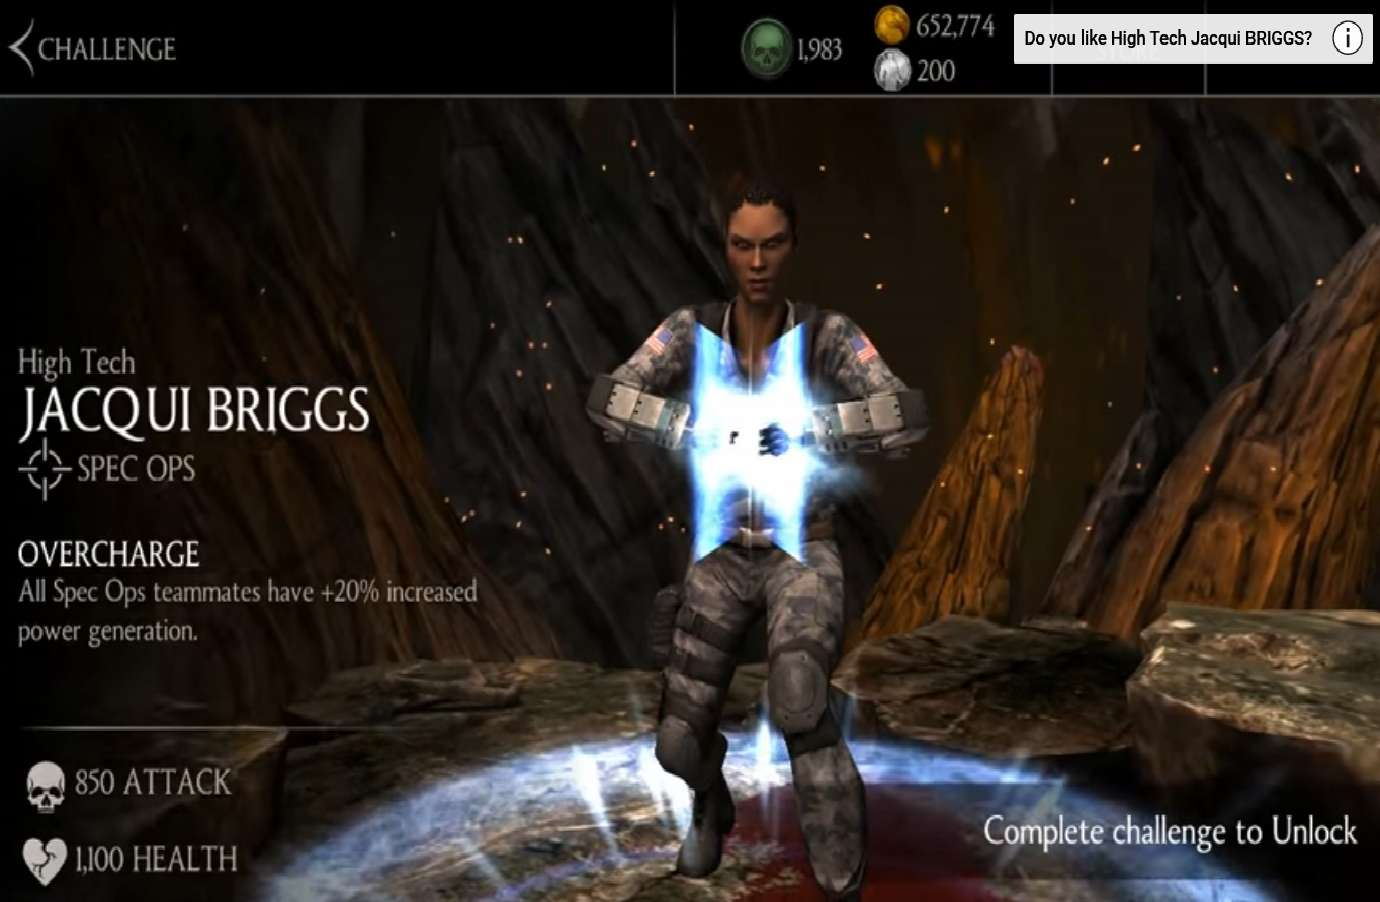 Mortal Kombat Mobile Updates To Version 2.5.0 And Gives Jacqui Briggs A Weekly Character Tower